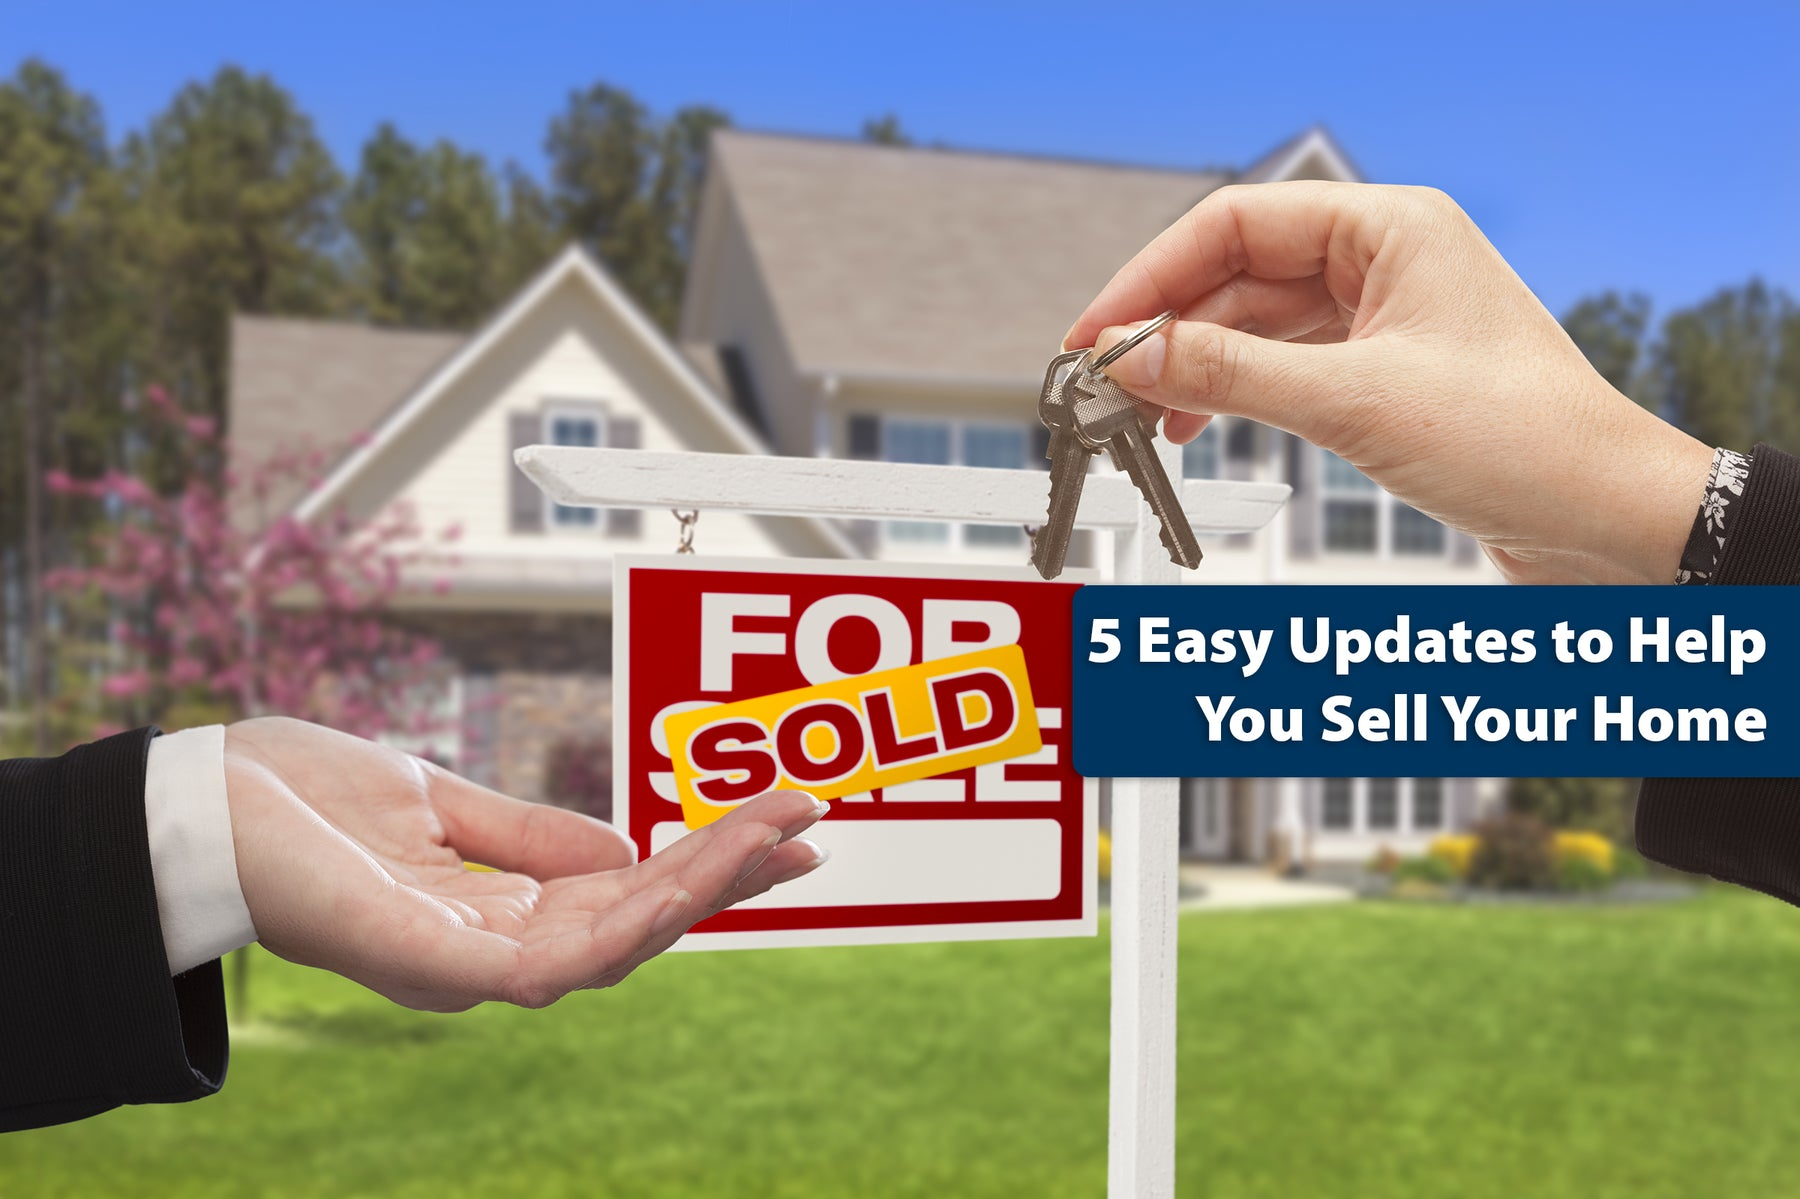 5 Easy Updates to Help You Sell Your Home